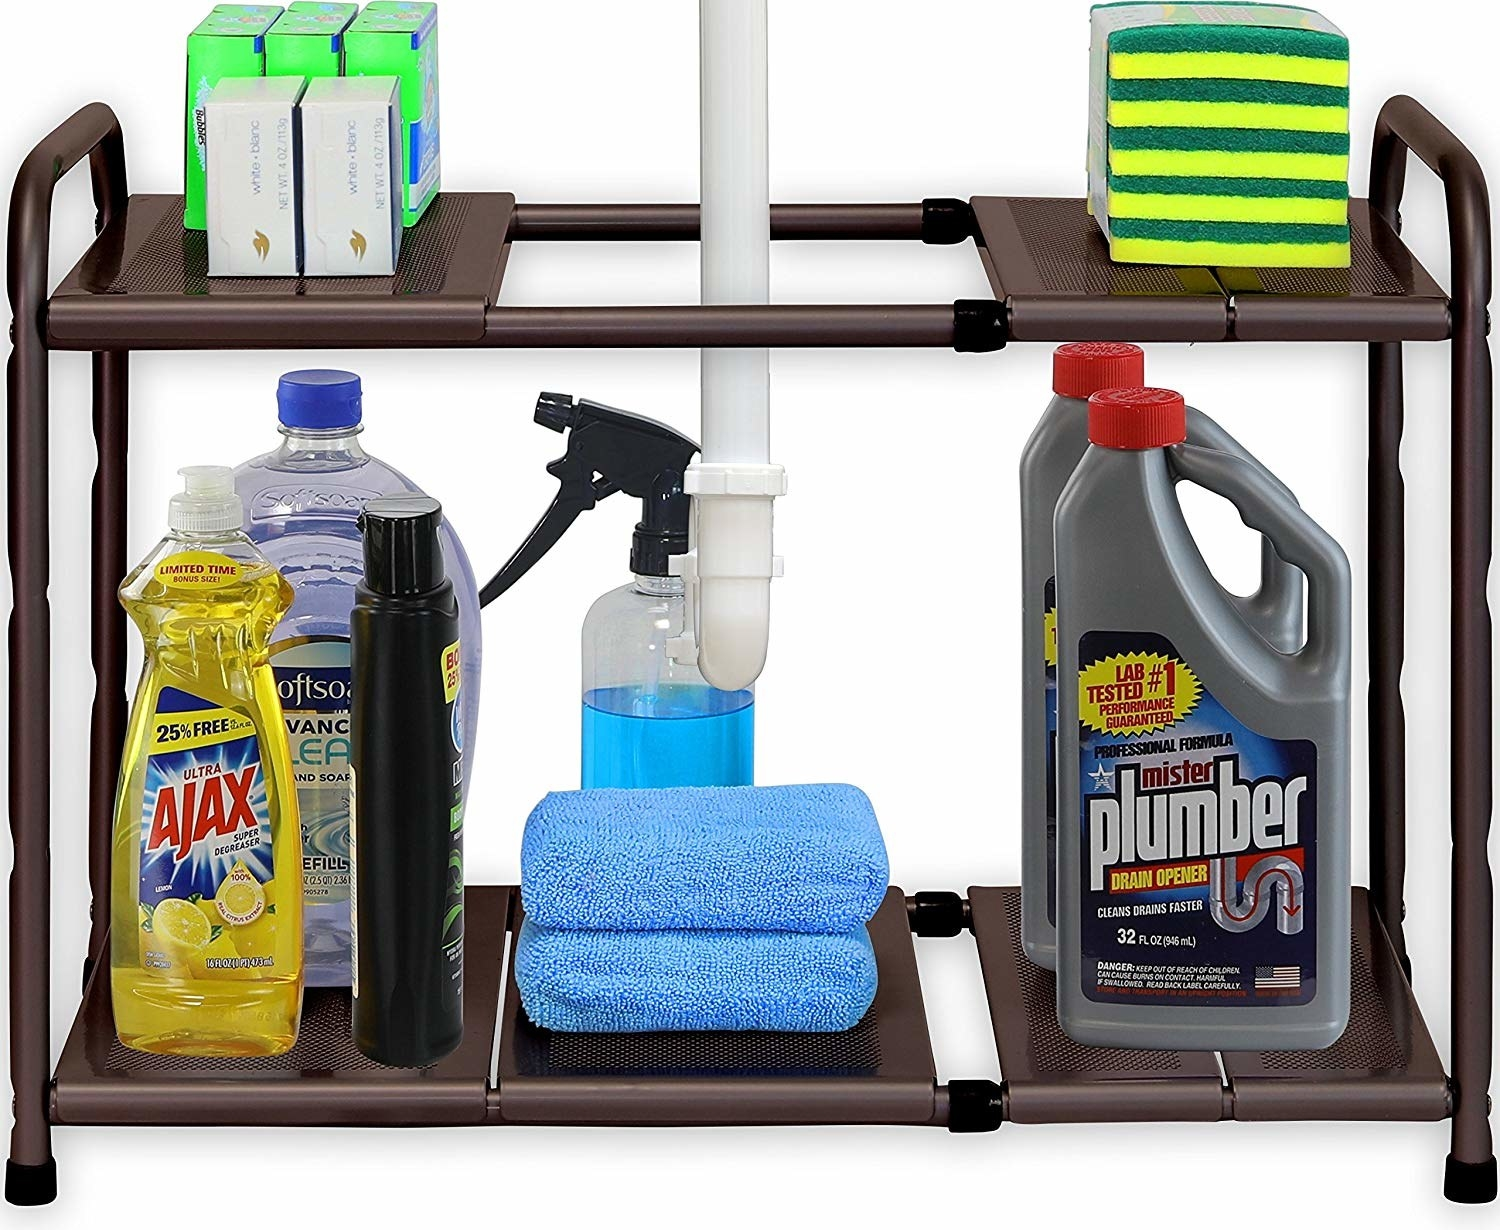 the brown rack holding cleaning products